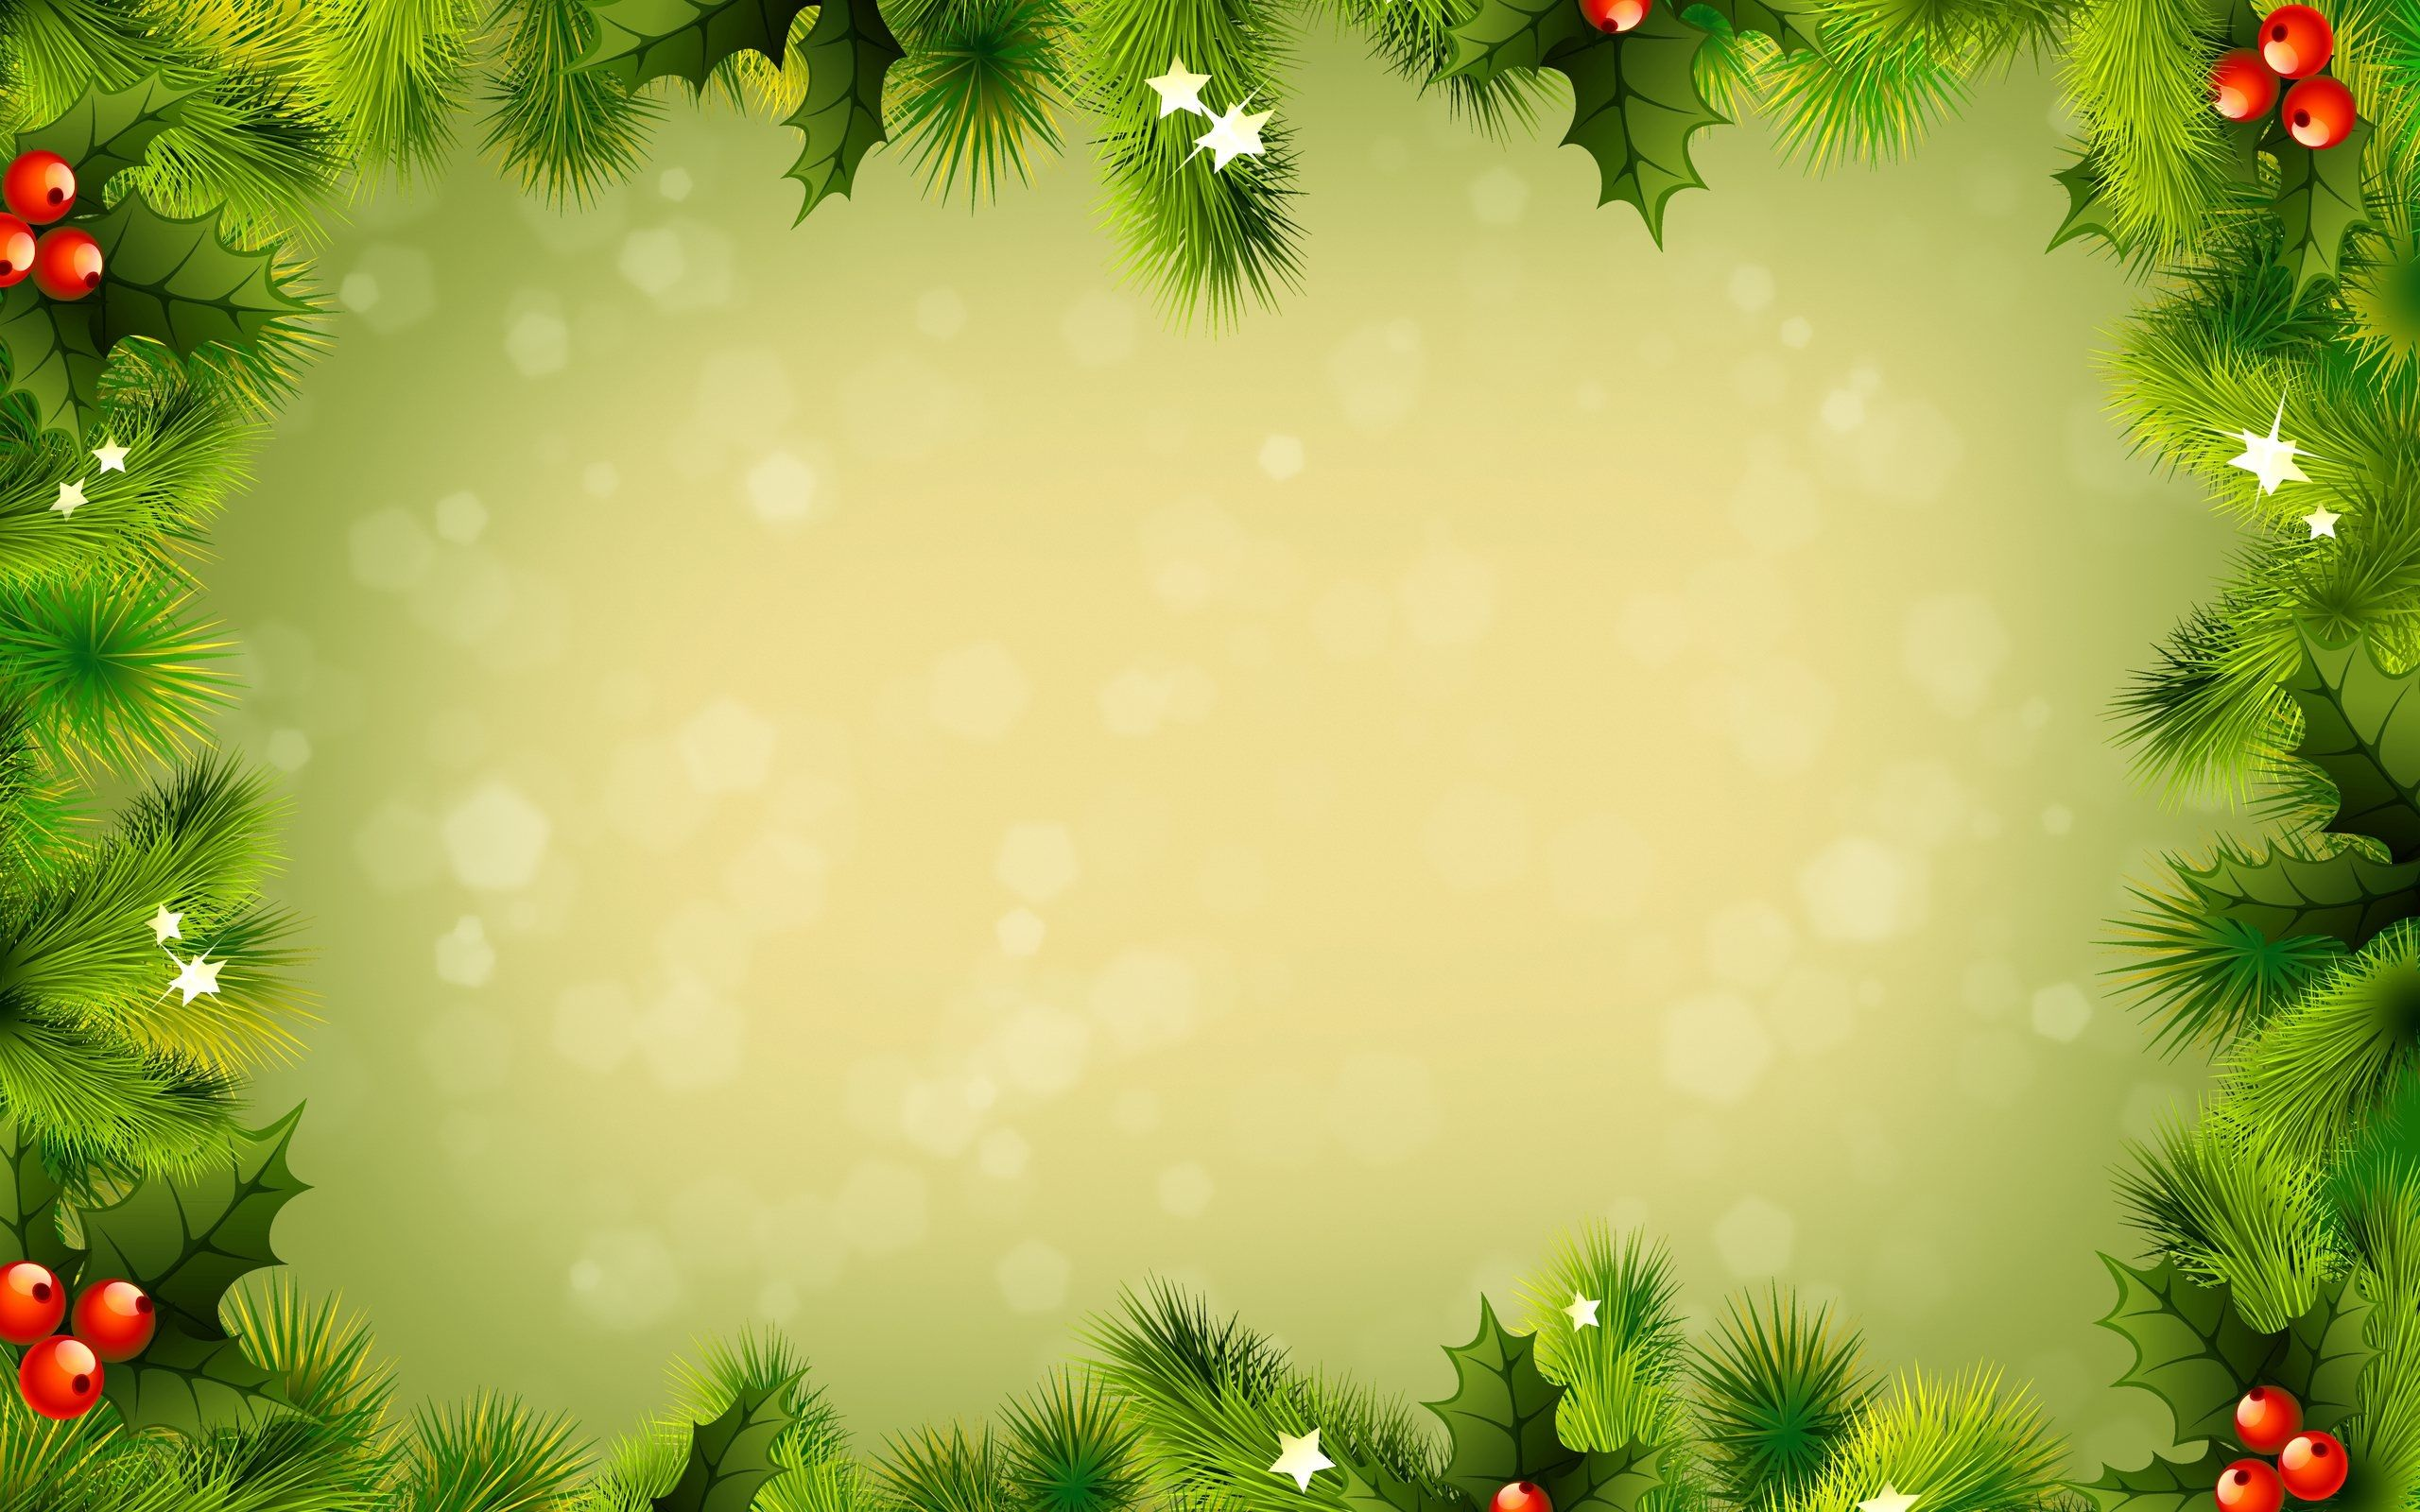 Christmas Background Pics Group (63+)